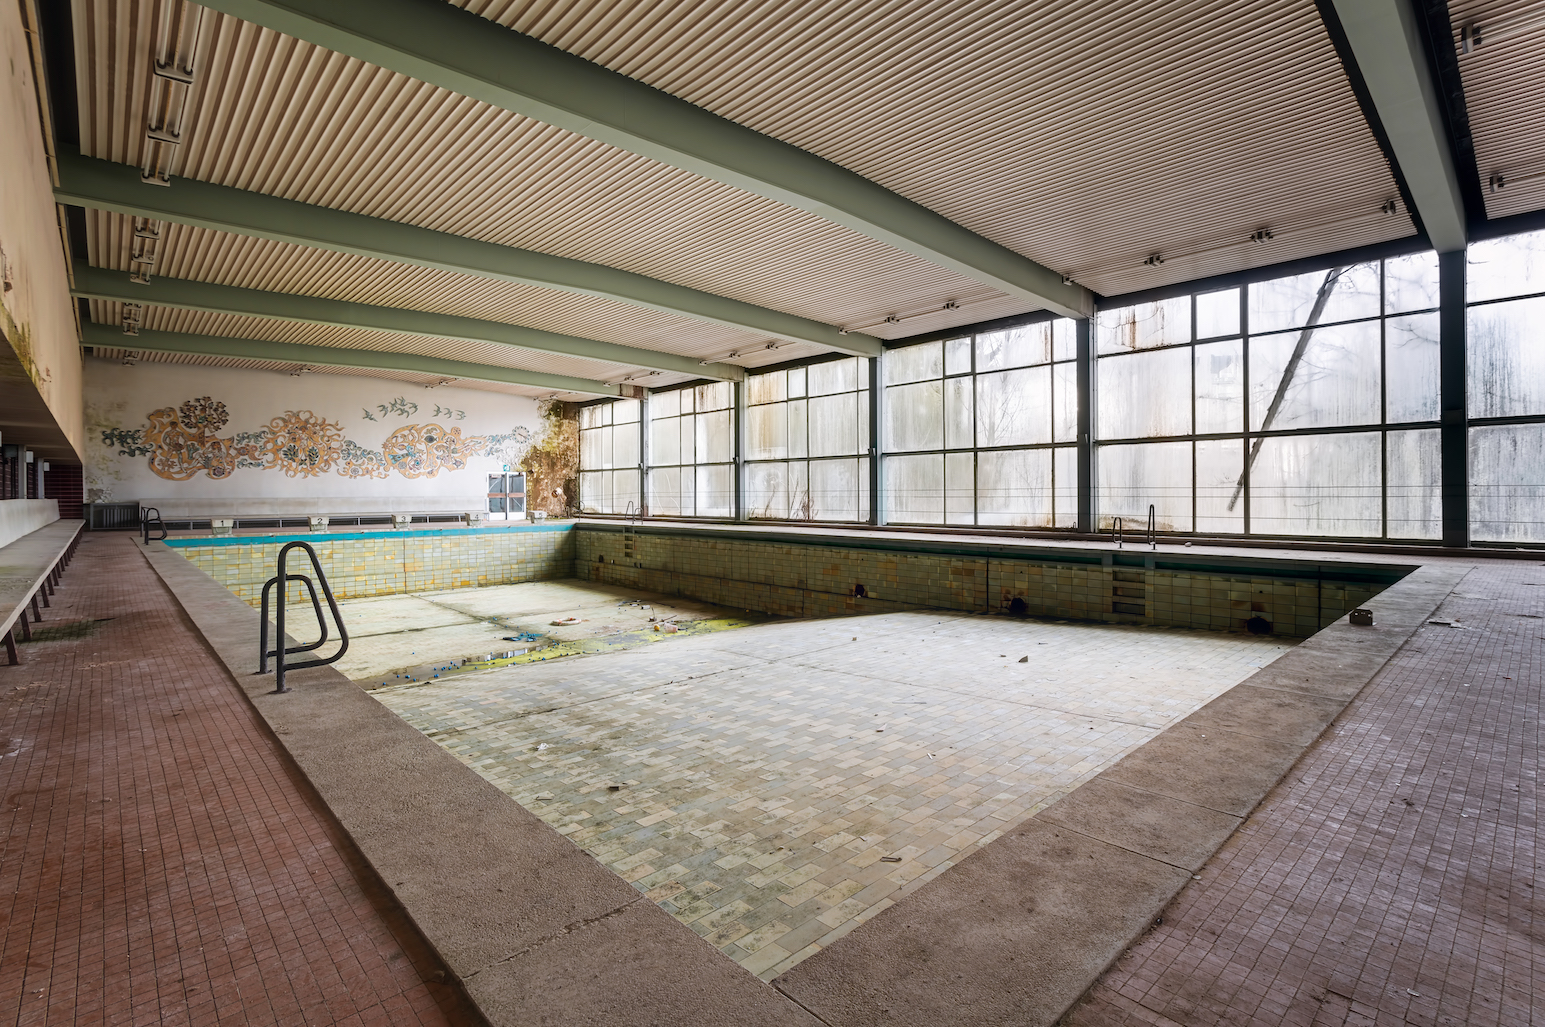 Swimming Pool Urban Photography By Roman Robroek